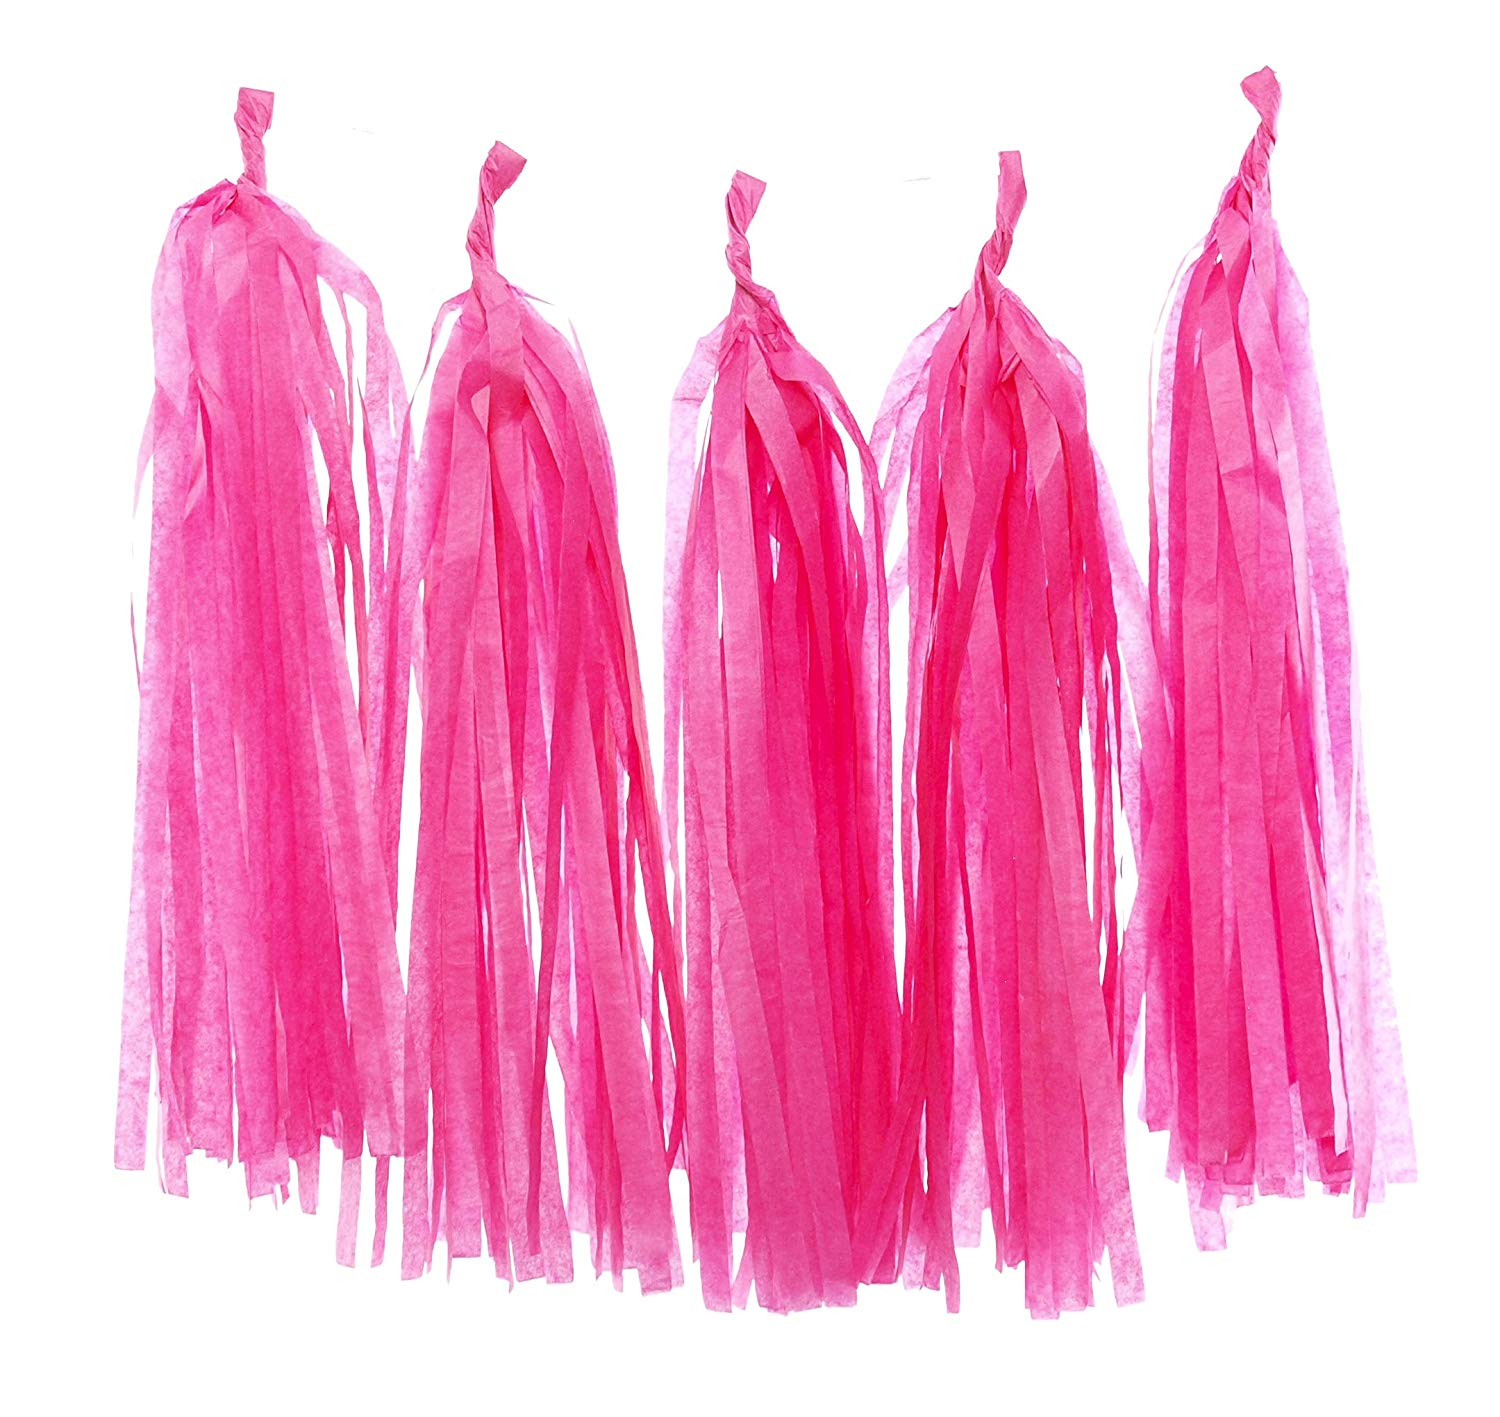 Tissue Paper Party Decorations, Hot Pink Paper Tassels (Set of 5) - Princess Party Supplies, Deep Pink Wedding Garland, Bunting Banner, Birthday Streamers